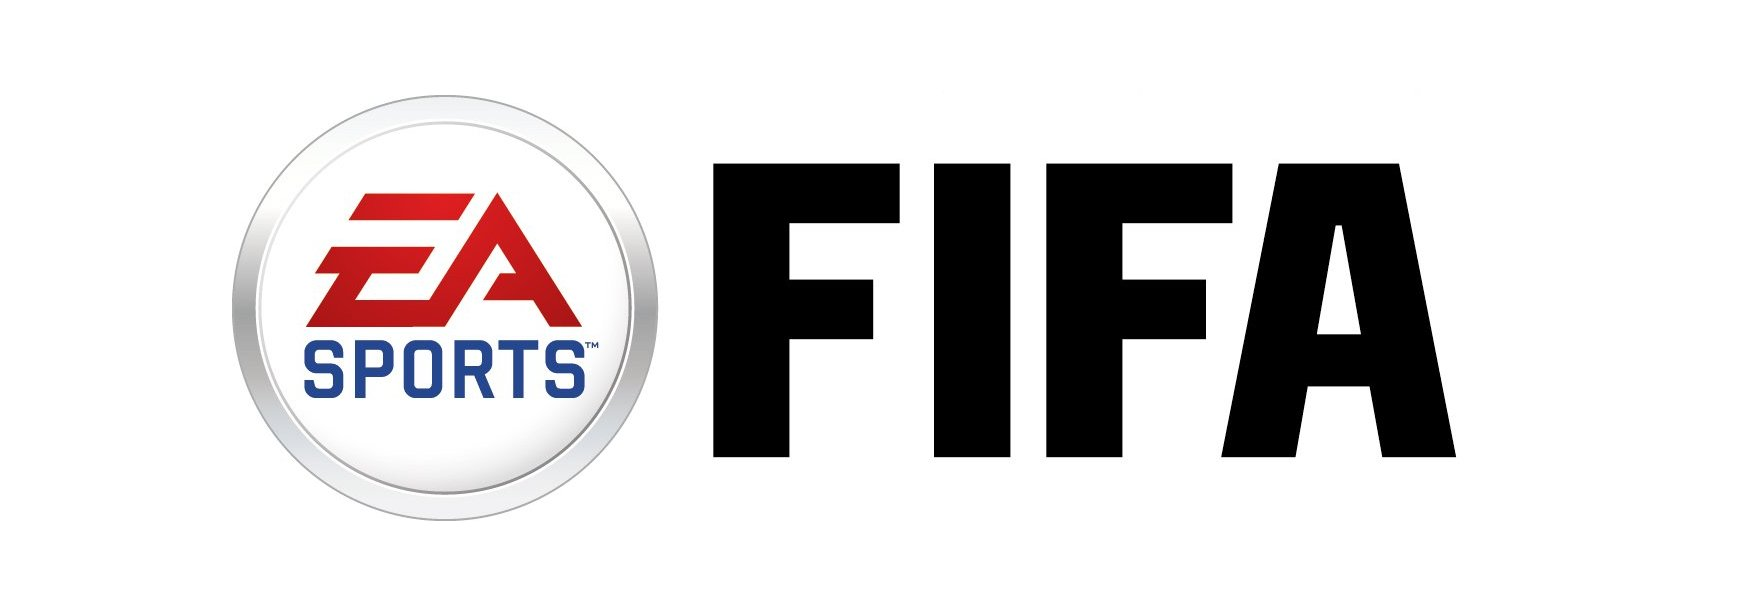 Top 10 – Songs featured in the EA Sports FIFA series